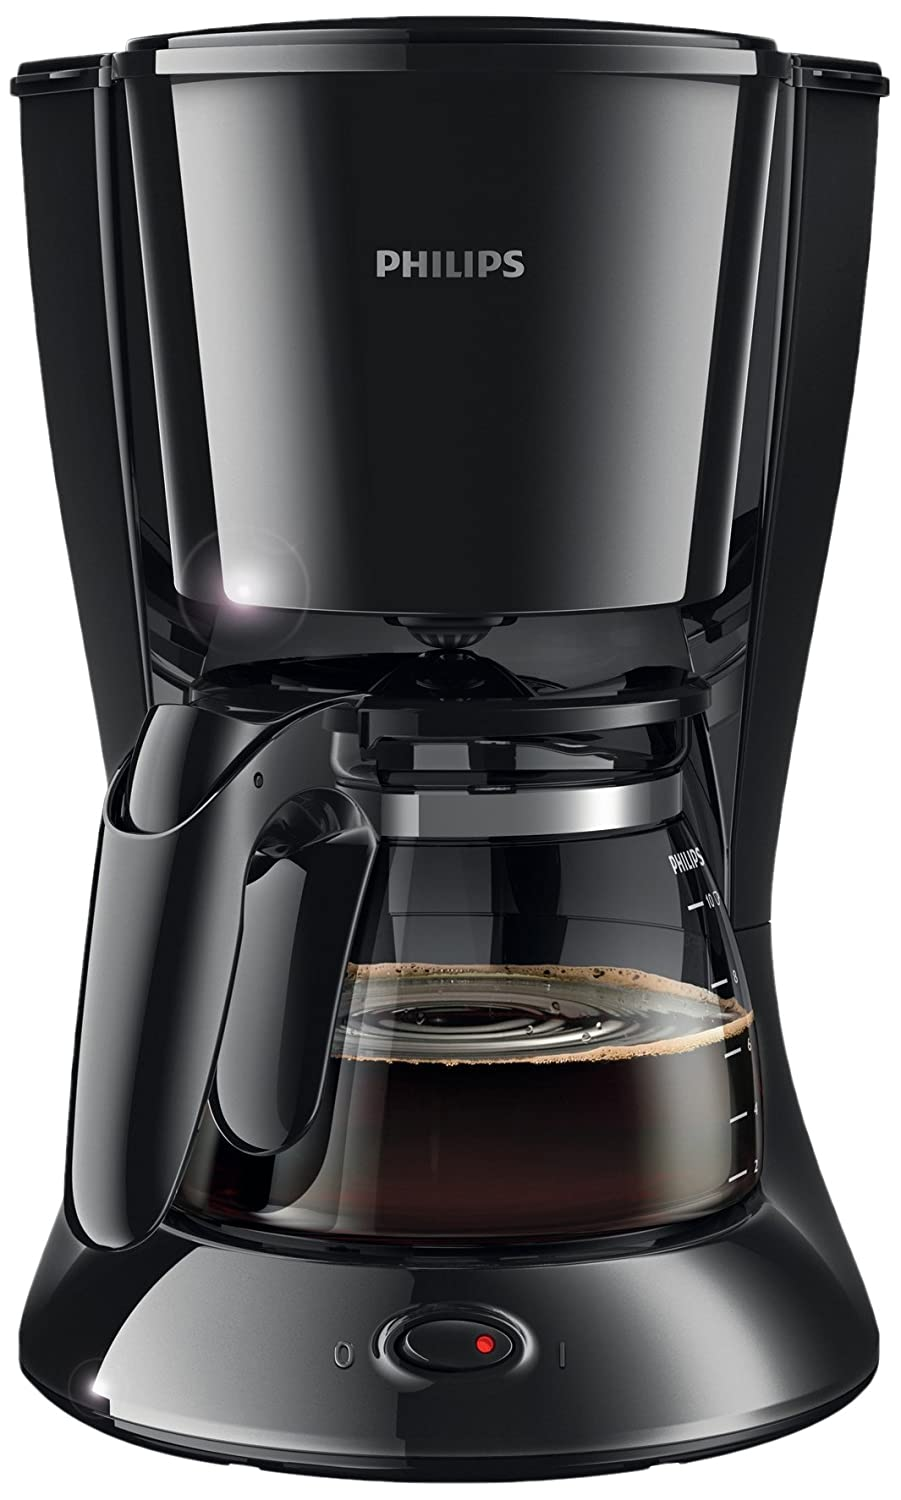 Coffee Maker At Flipkart : Philips coffee maker specifications Archives - Buy Electronics Online in India from Amazon ...